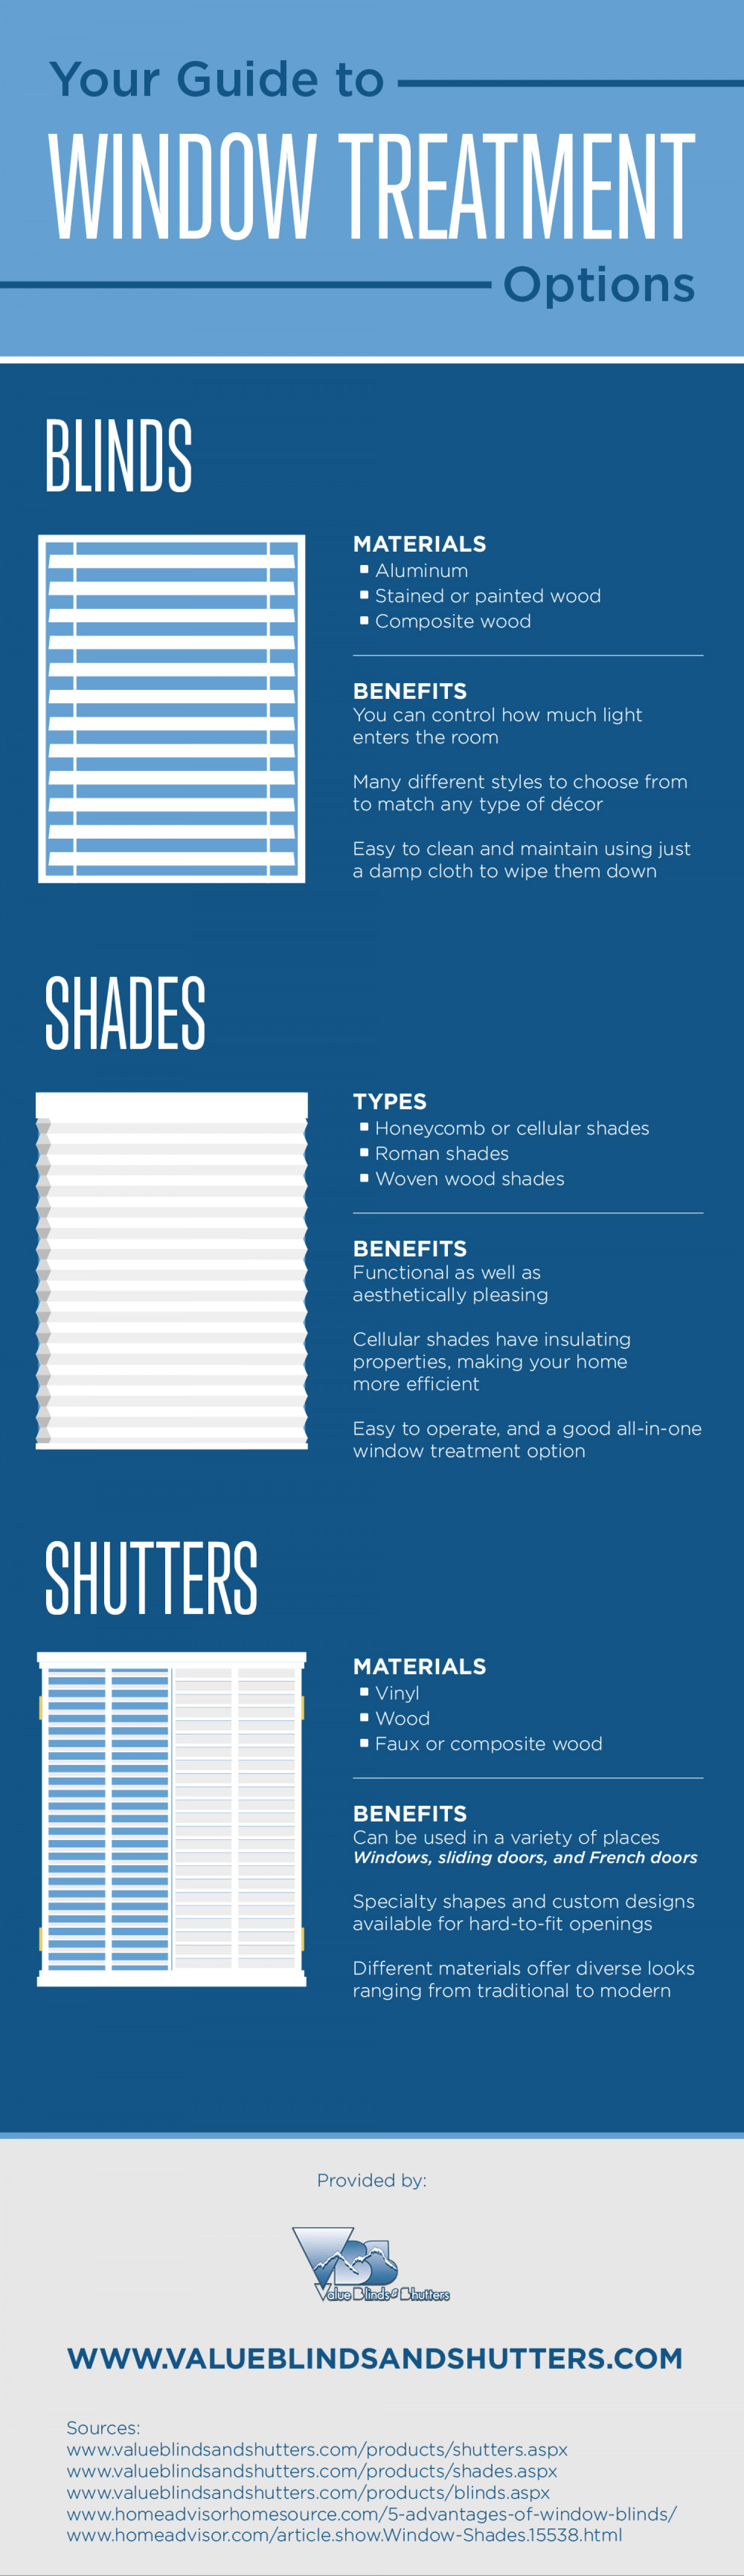 Your Guide to Window Treatment Options Infographic